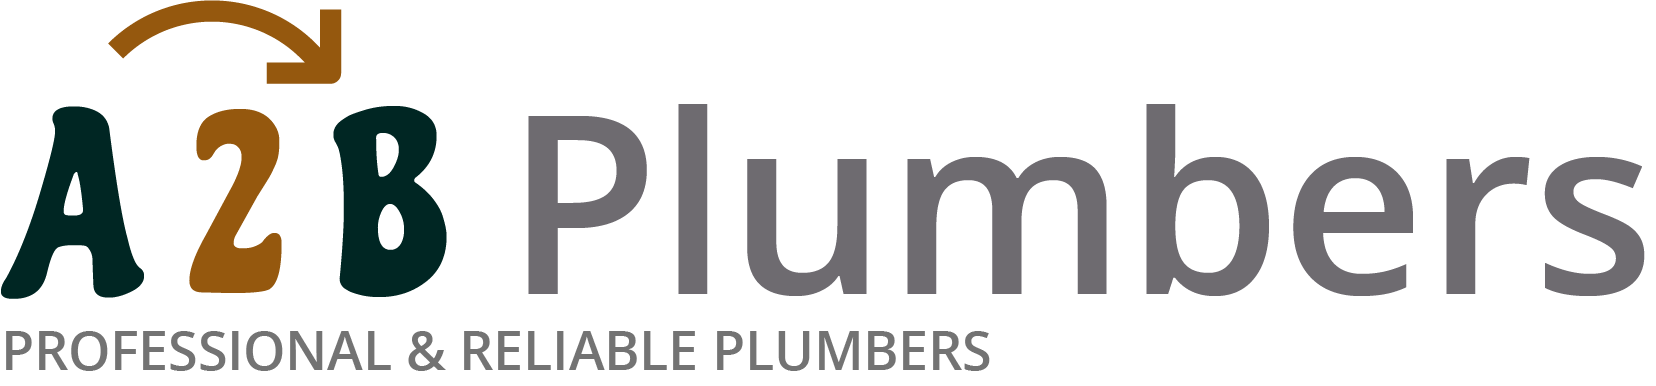 If you need a boiler installed, a radiator repaired or a leaking tap fixed, call us now - we provide services for properties in Burnley and the local area.